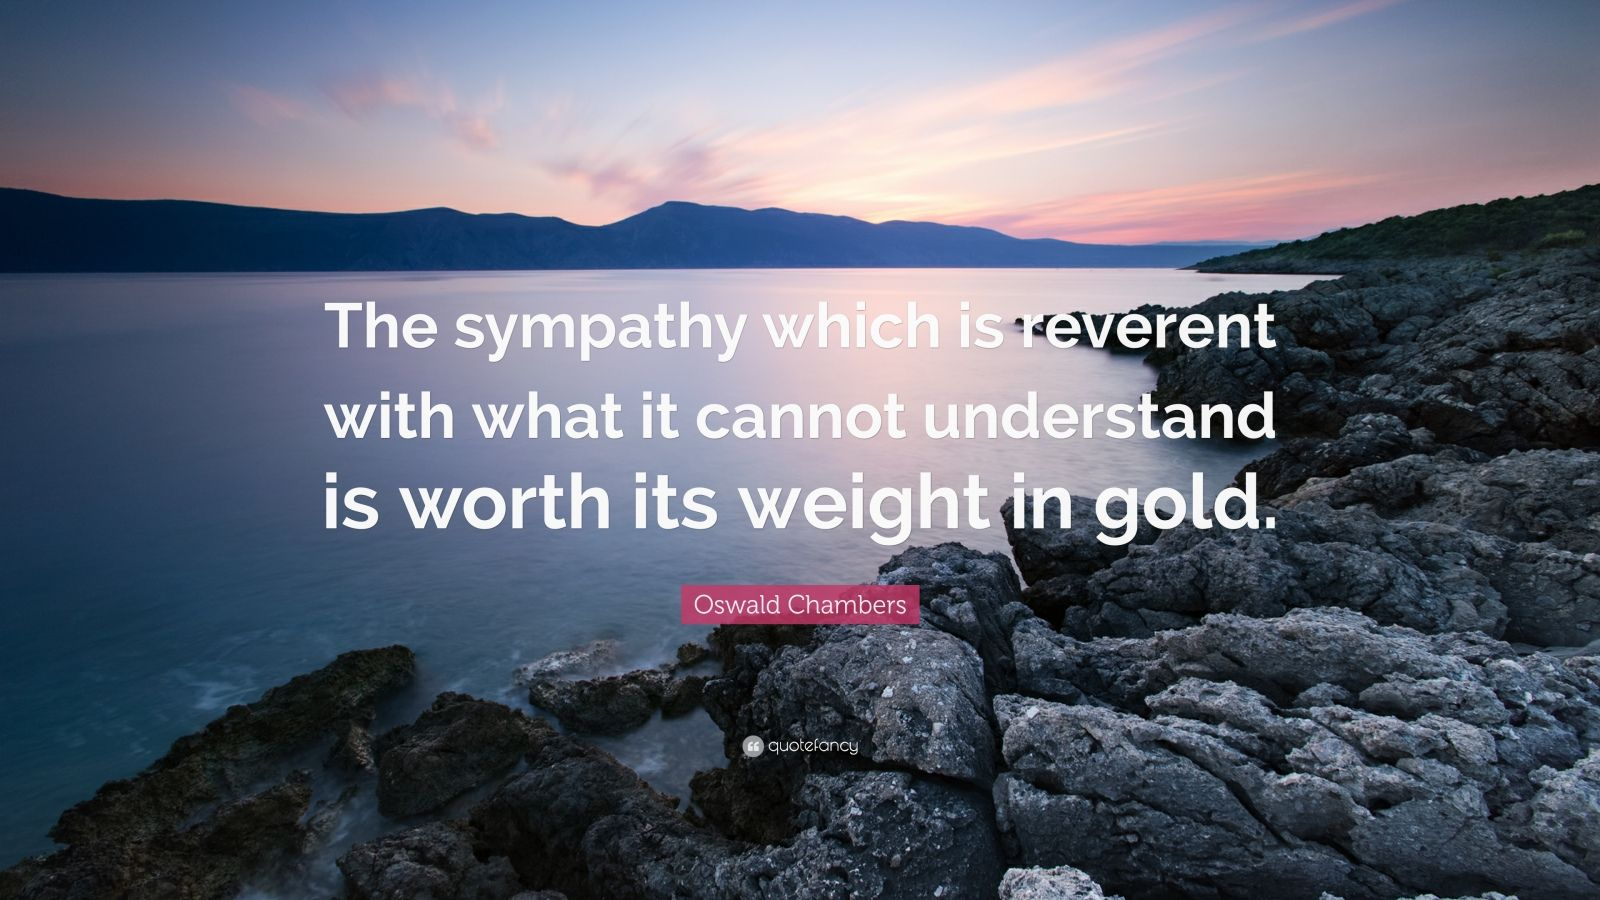 """Oswald Chambers Quote: """"The sympathy which is reverent with what it cannot understand is worth its weight in gold."""""""